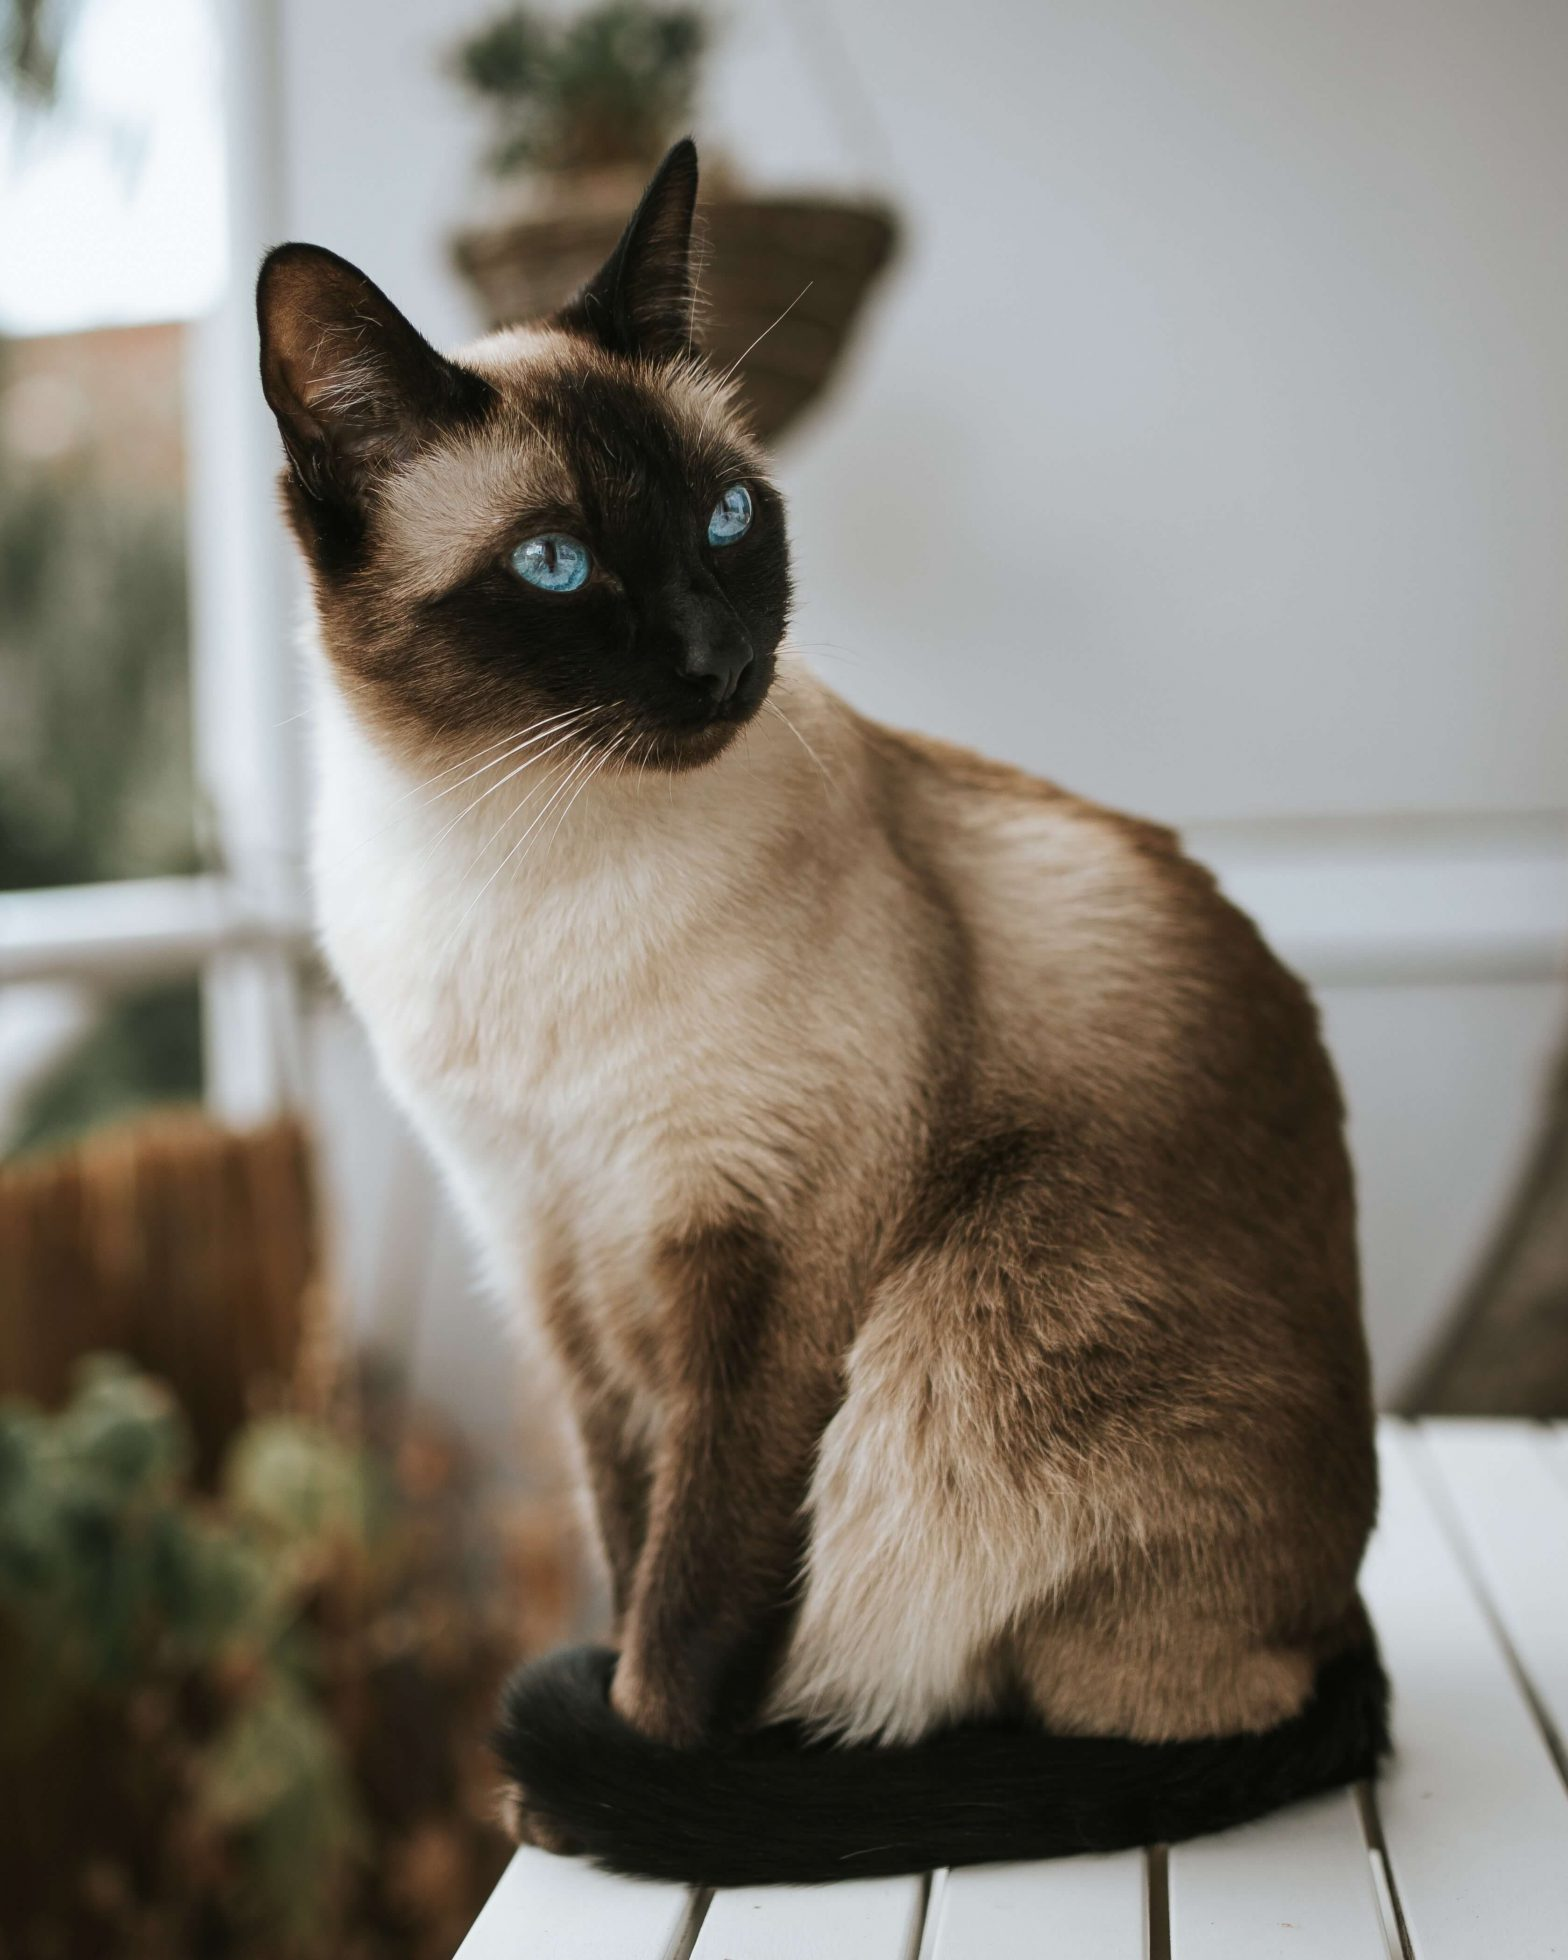 Photo of Andrew - a Siamese brown cat